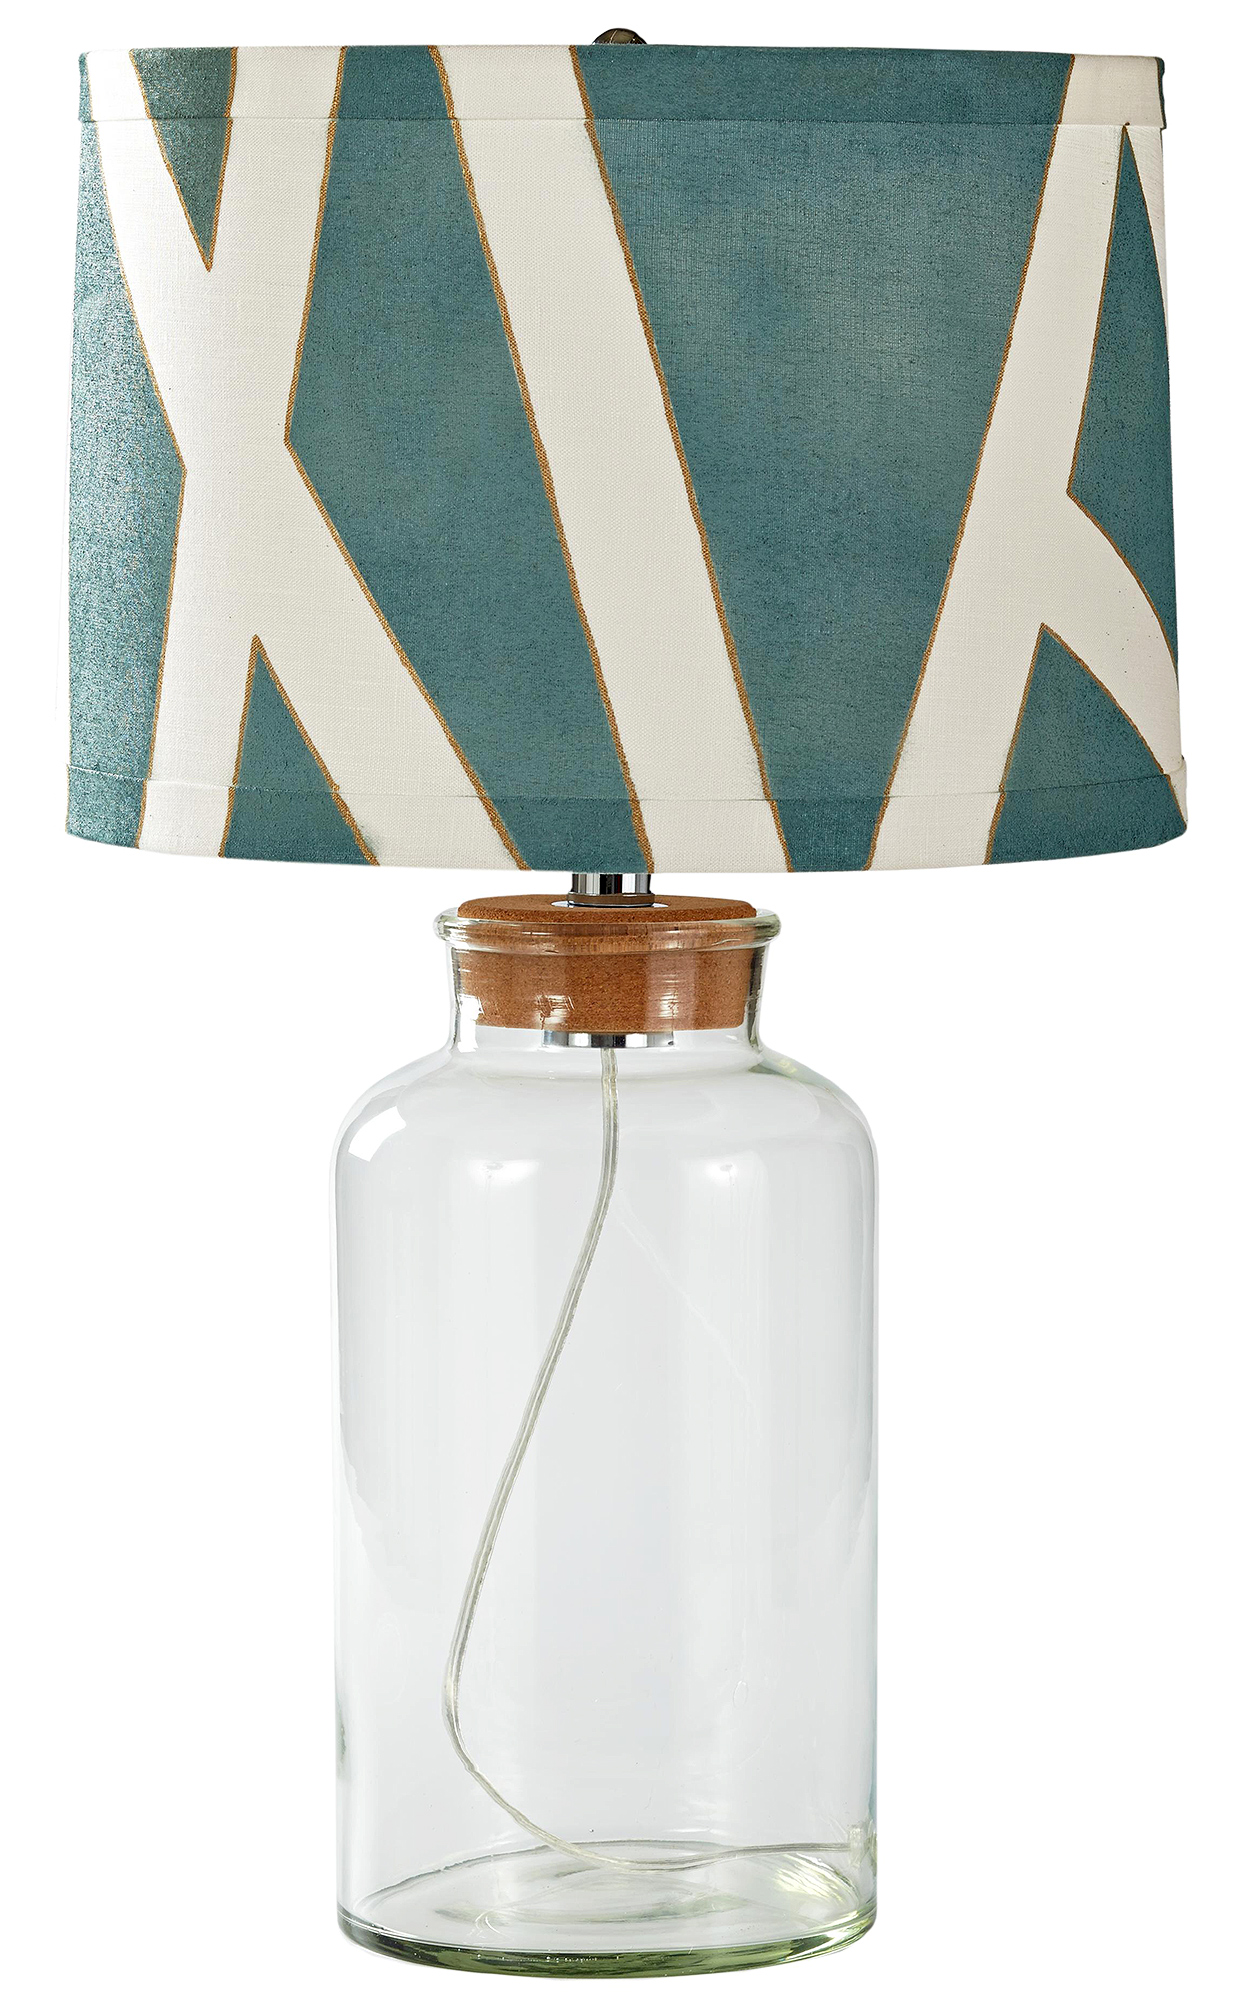 spray-painted geometric teal and gold lampshade